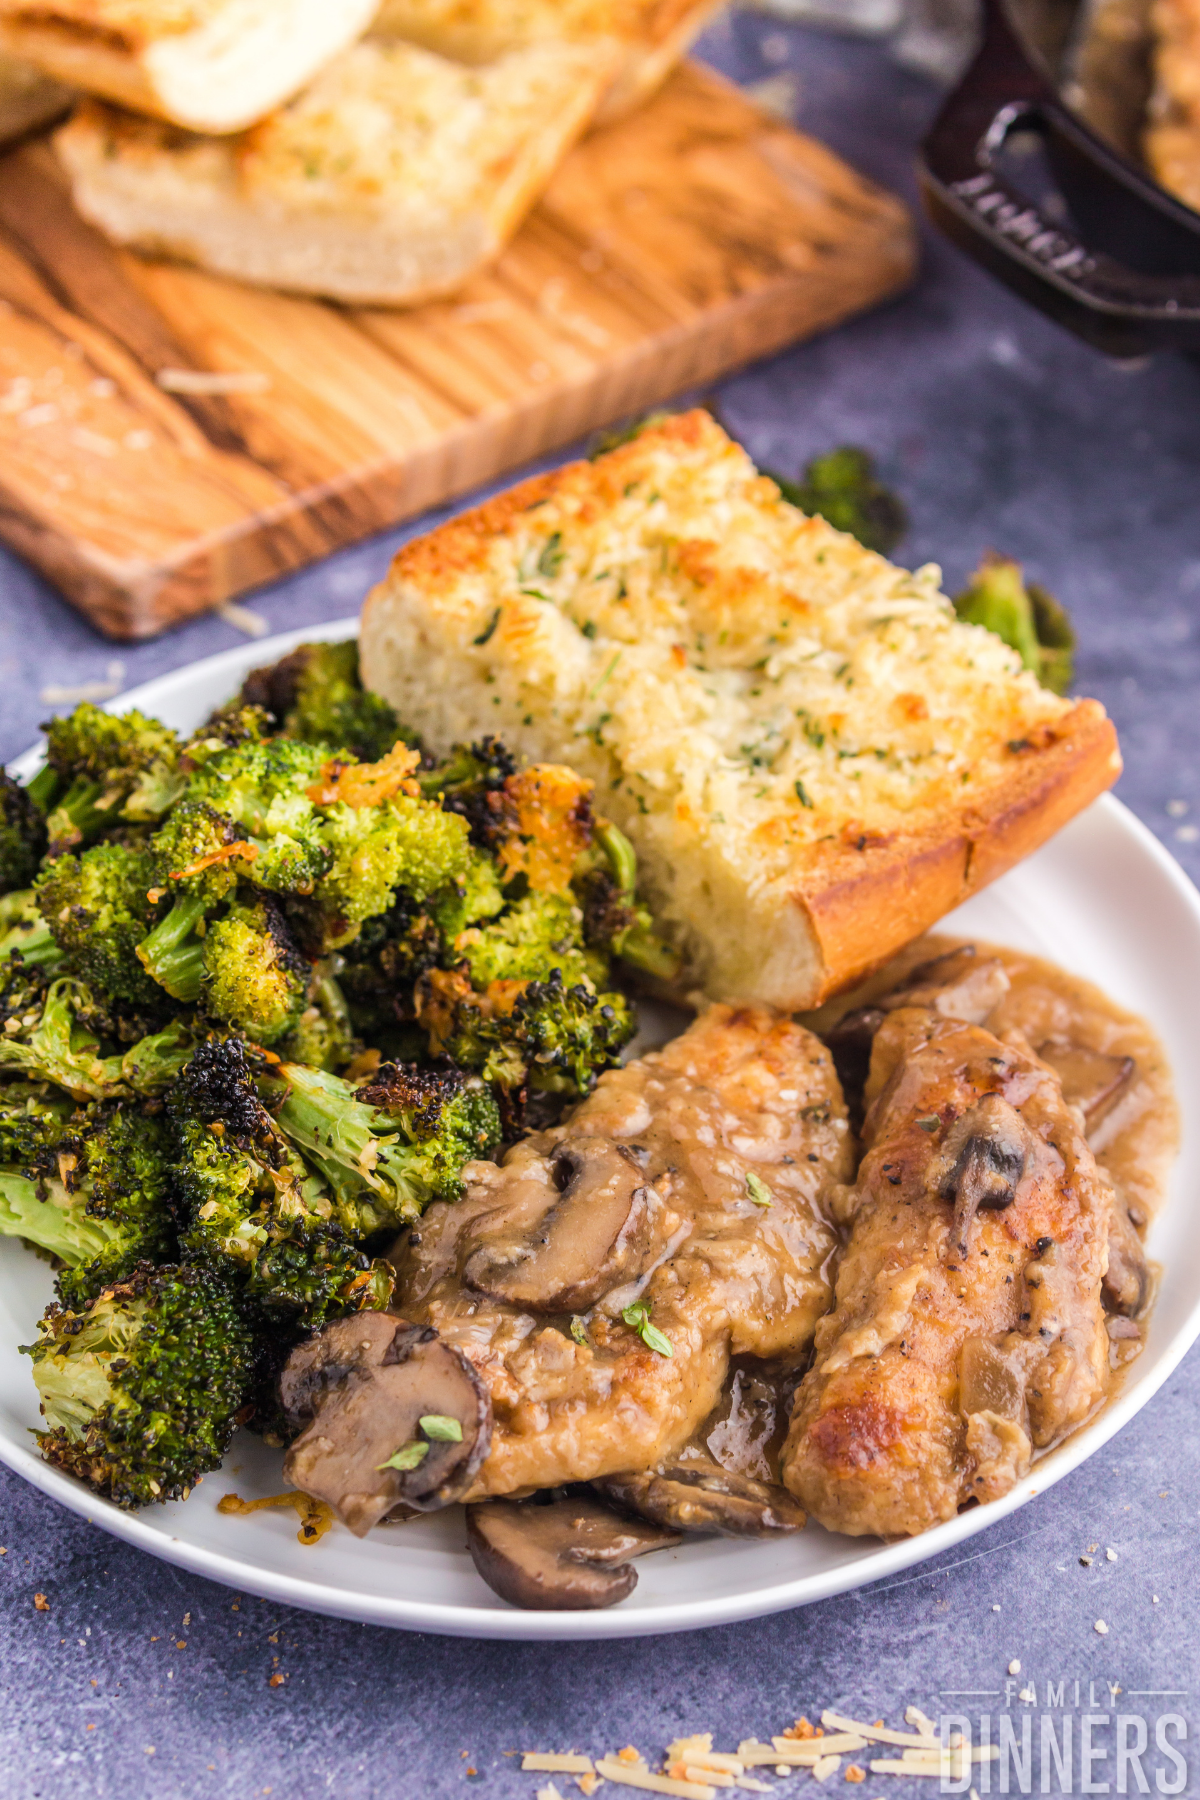 white round plate on blue counter. Plate has two pieces of golden browned chicken with mushrooms and sauce as well as crispy parmesan roasted broccoli and garlic cheese bread slice.